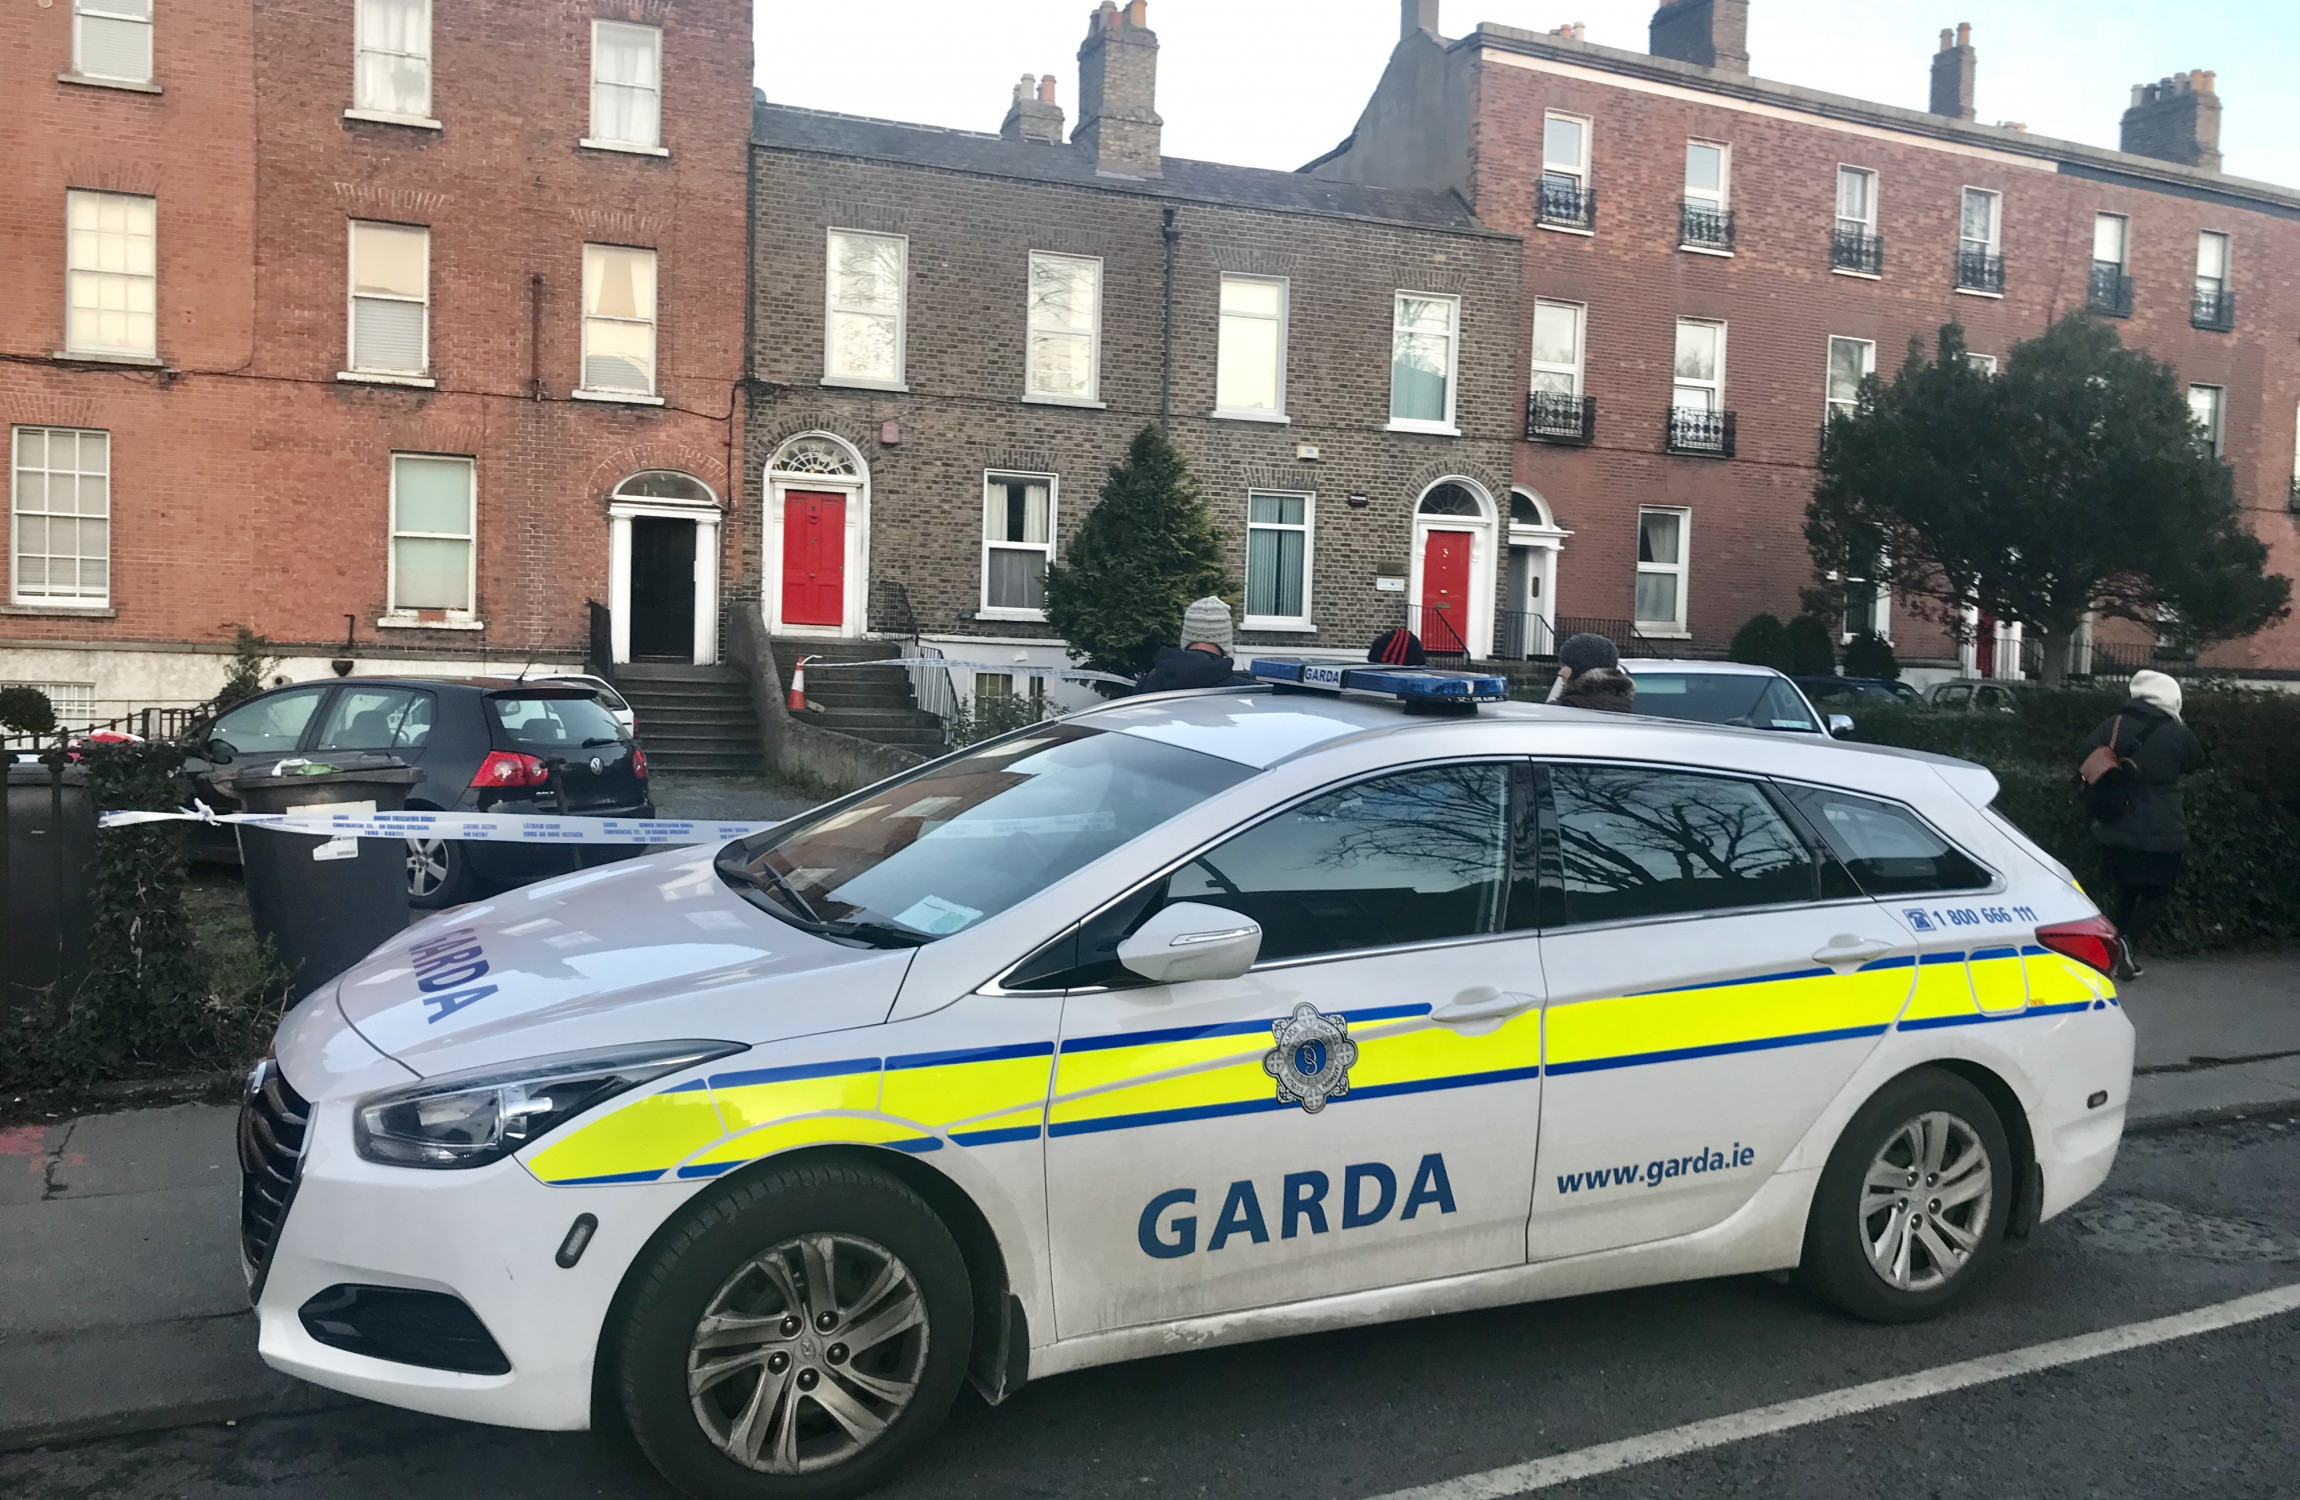 Investigation launched after body of woman found at house in Dublin